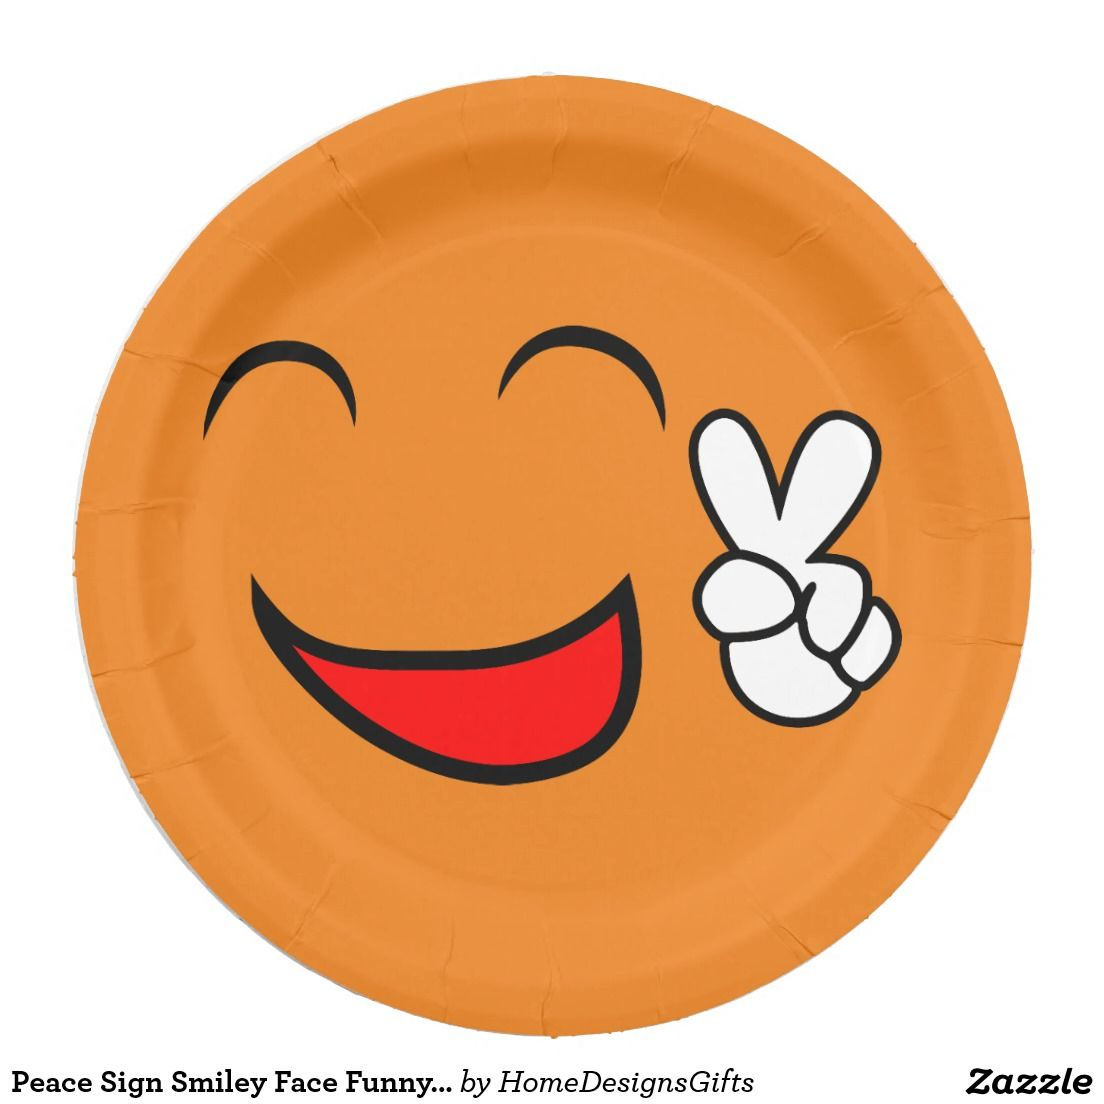 Peace Sign Smiley Face Funny Emoticon Orange Party Paper Plate  sc 1 st  Pinterest & Peace Sign Smiley Face Funny Emoticon Orange Party Paper Plate ...